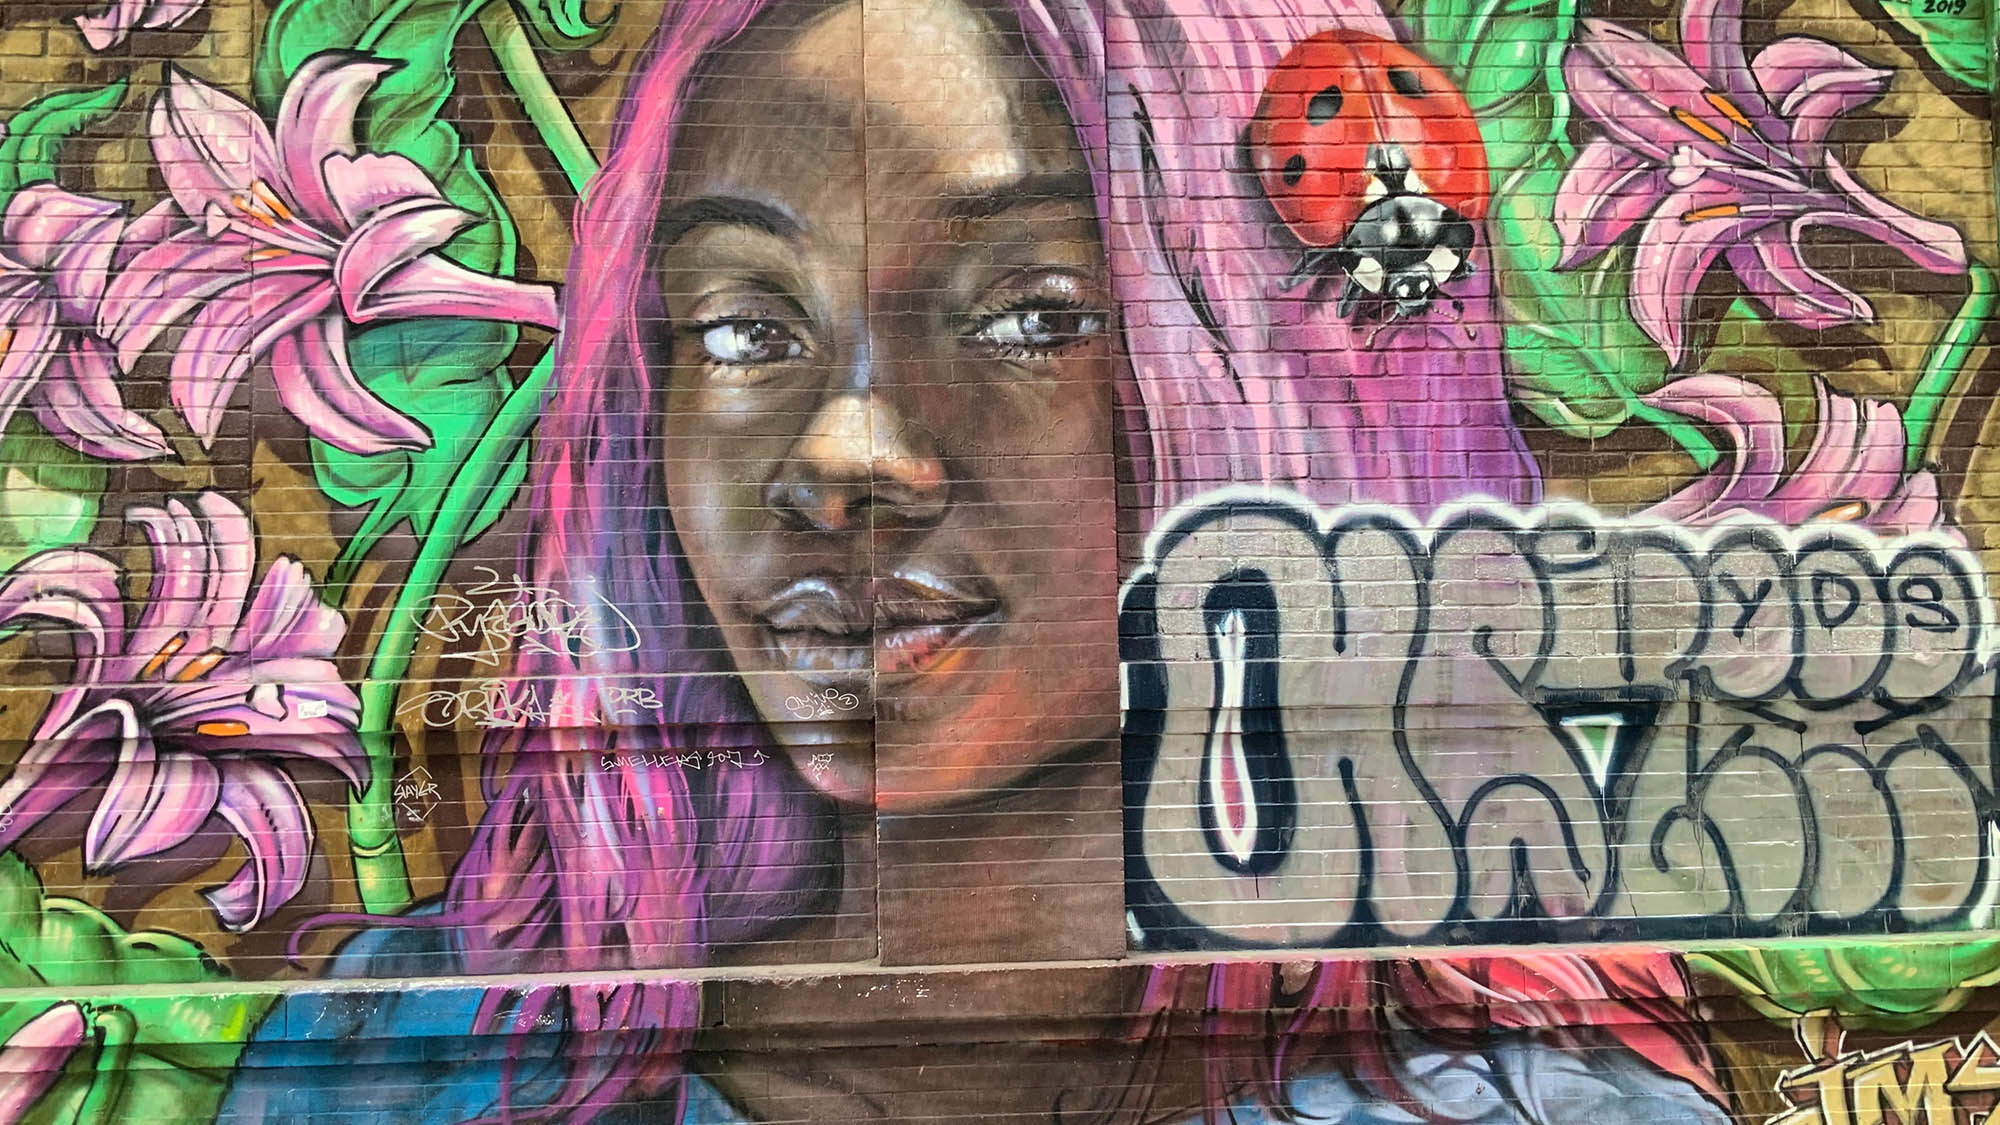 Mural of Black girl with purple hair with ladybug in ahir against pink and green flowers